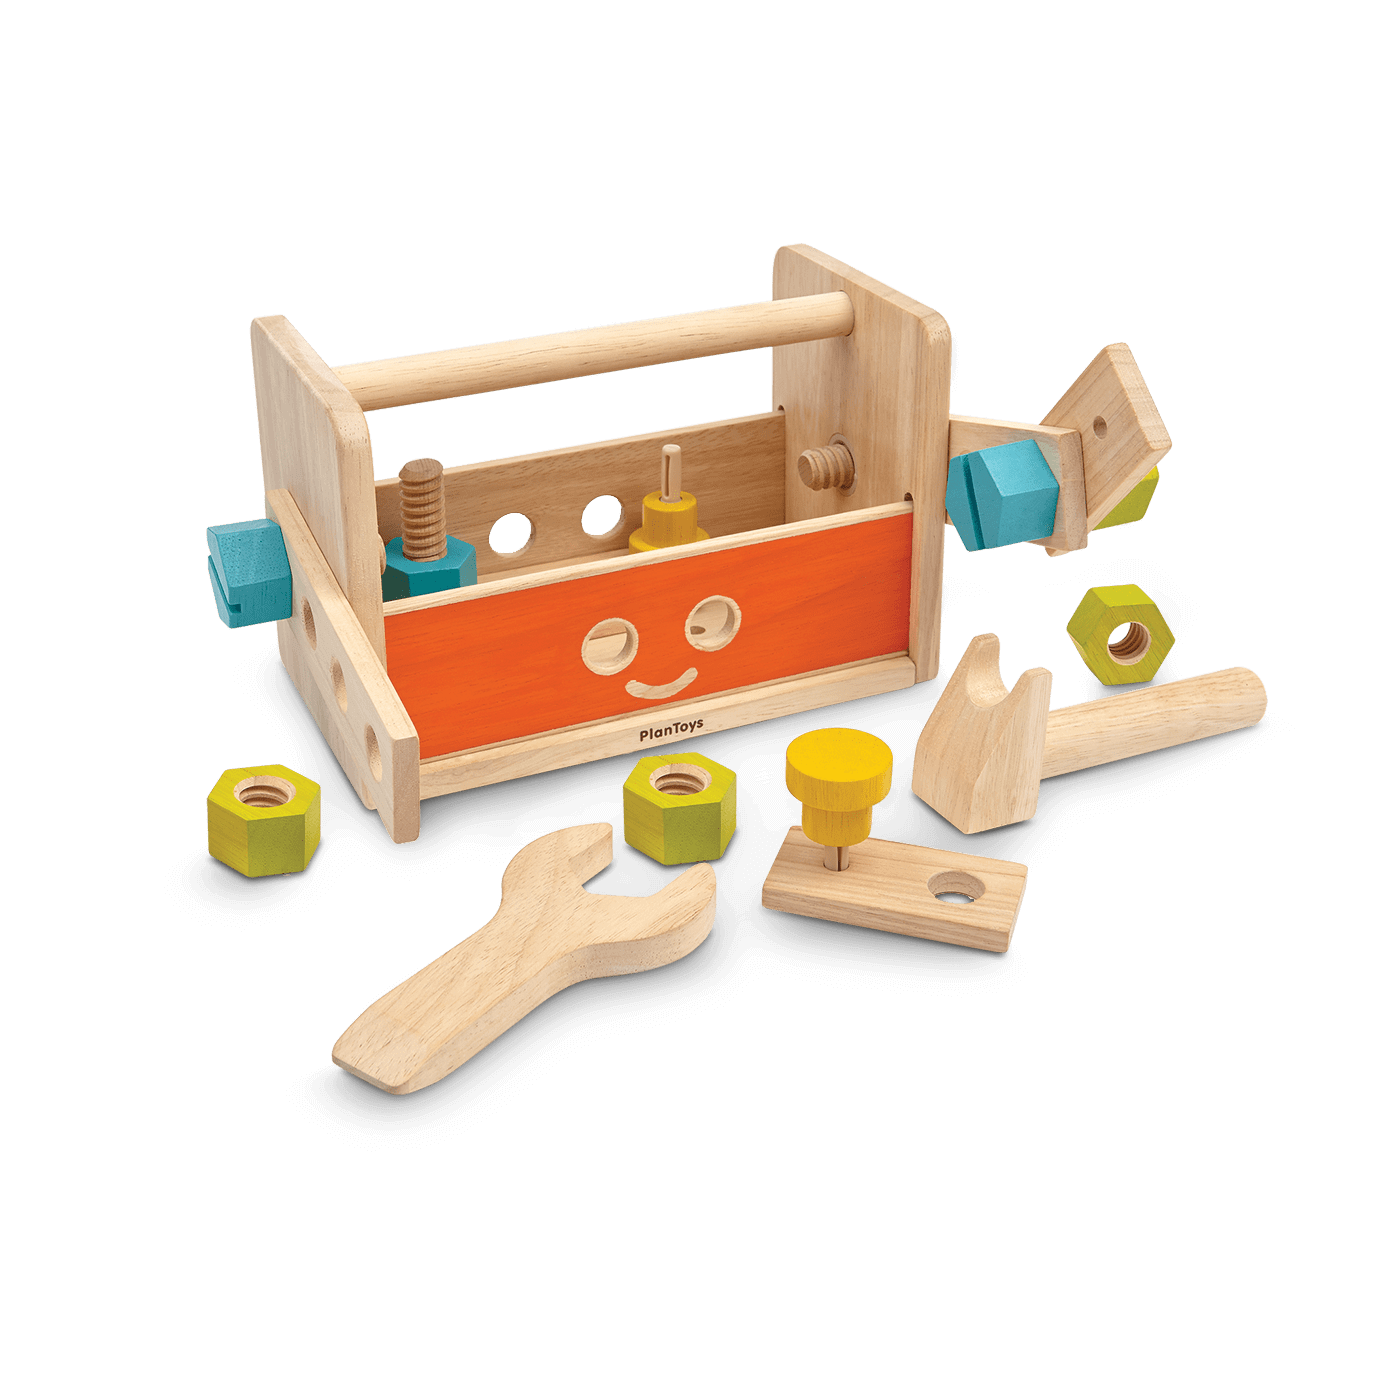 5540_PlanToys_ROBOT_TOOLBOX_Blocks_and_Construction_Fine_Motor_Coordination_Logical_Creative_3yrs_Wooden_toys_Education_toys_Safety_Toys_Non-toxic_0.png